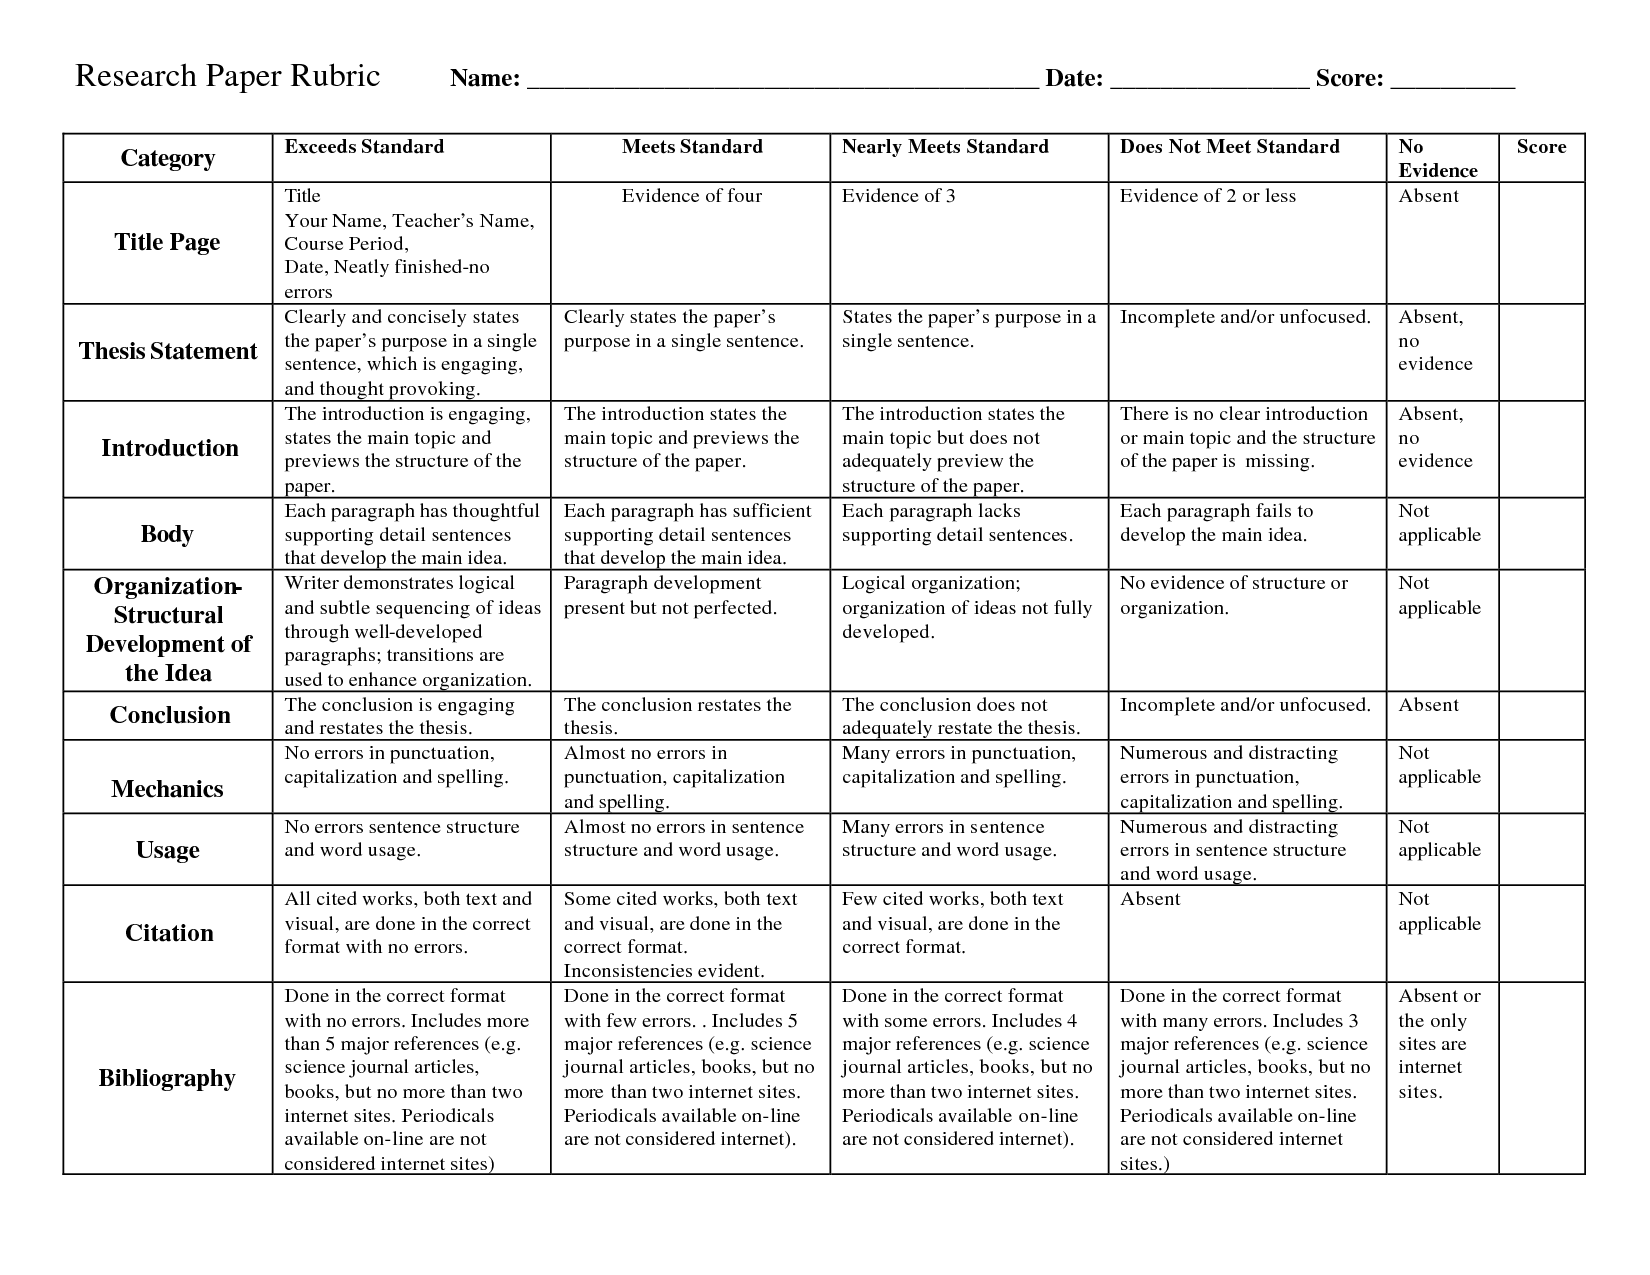 essays rubrics Research paper rubric name: _____ date: reflective essay name: essay, guide and rubrics contains 5 – 6 of criteria for.